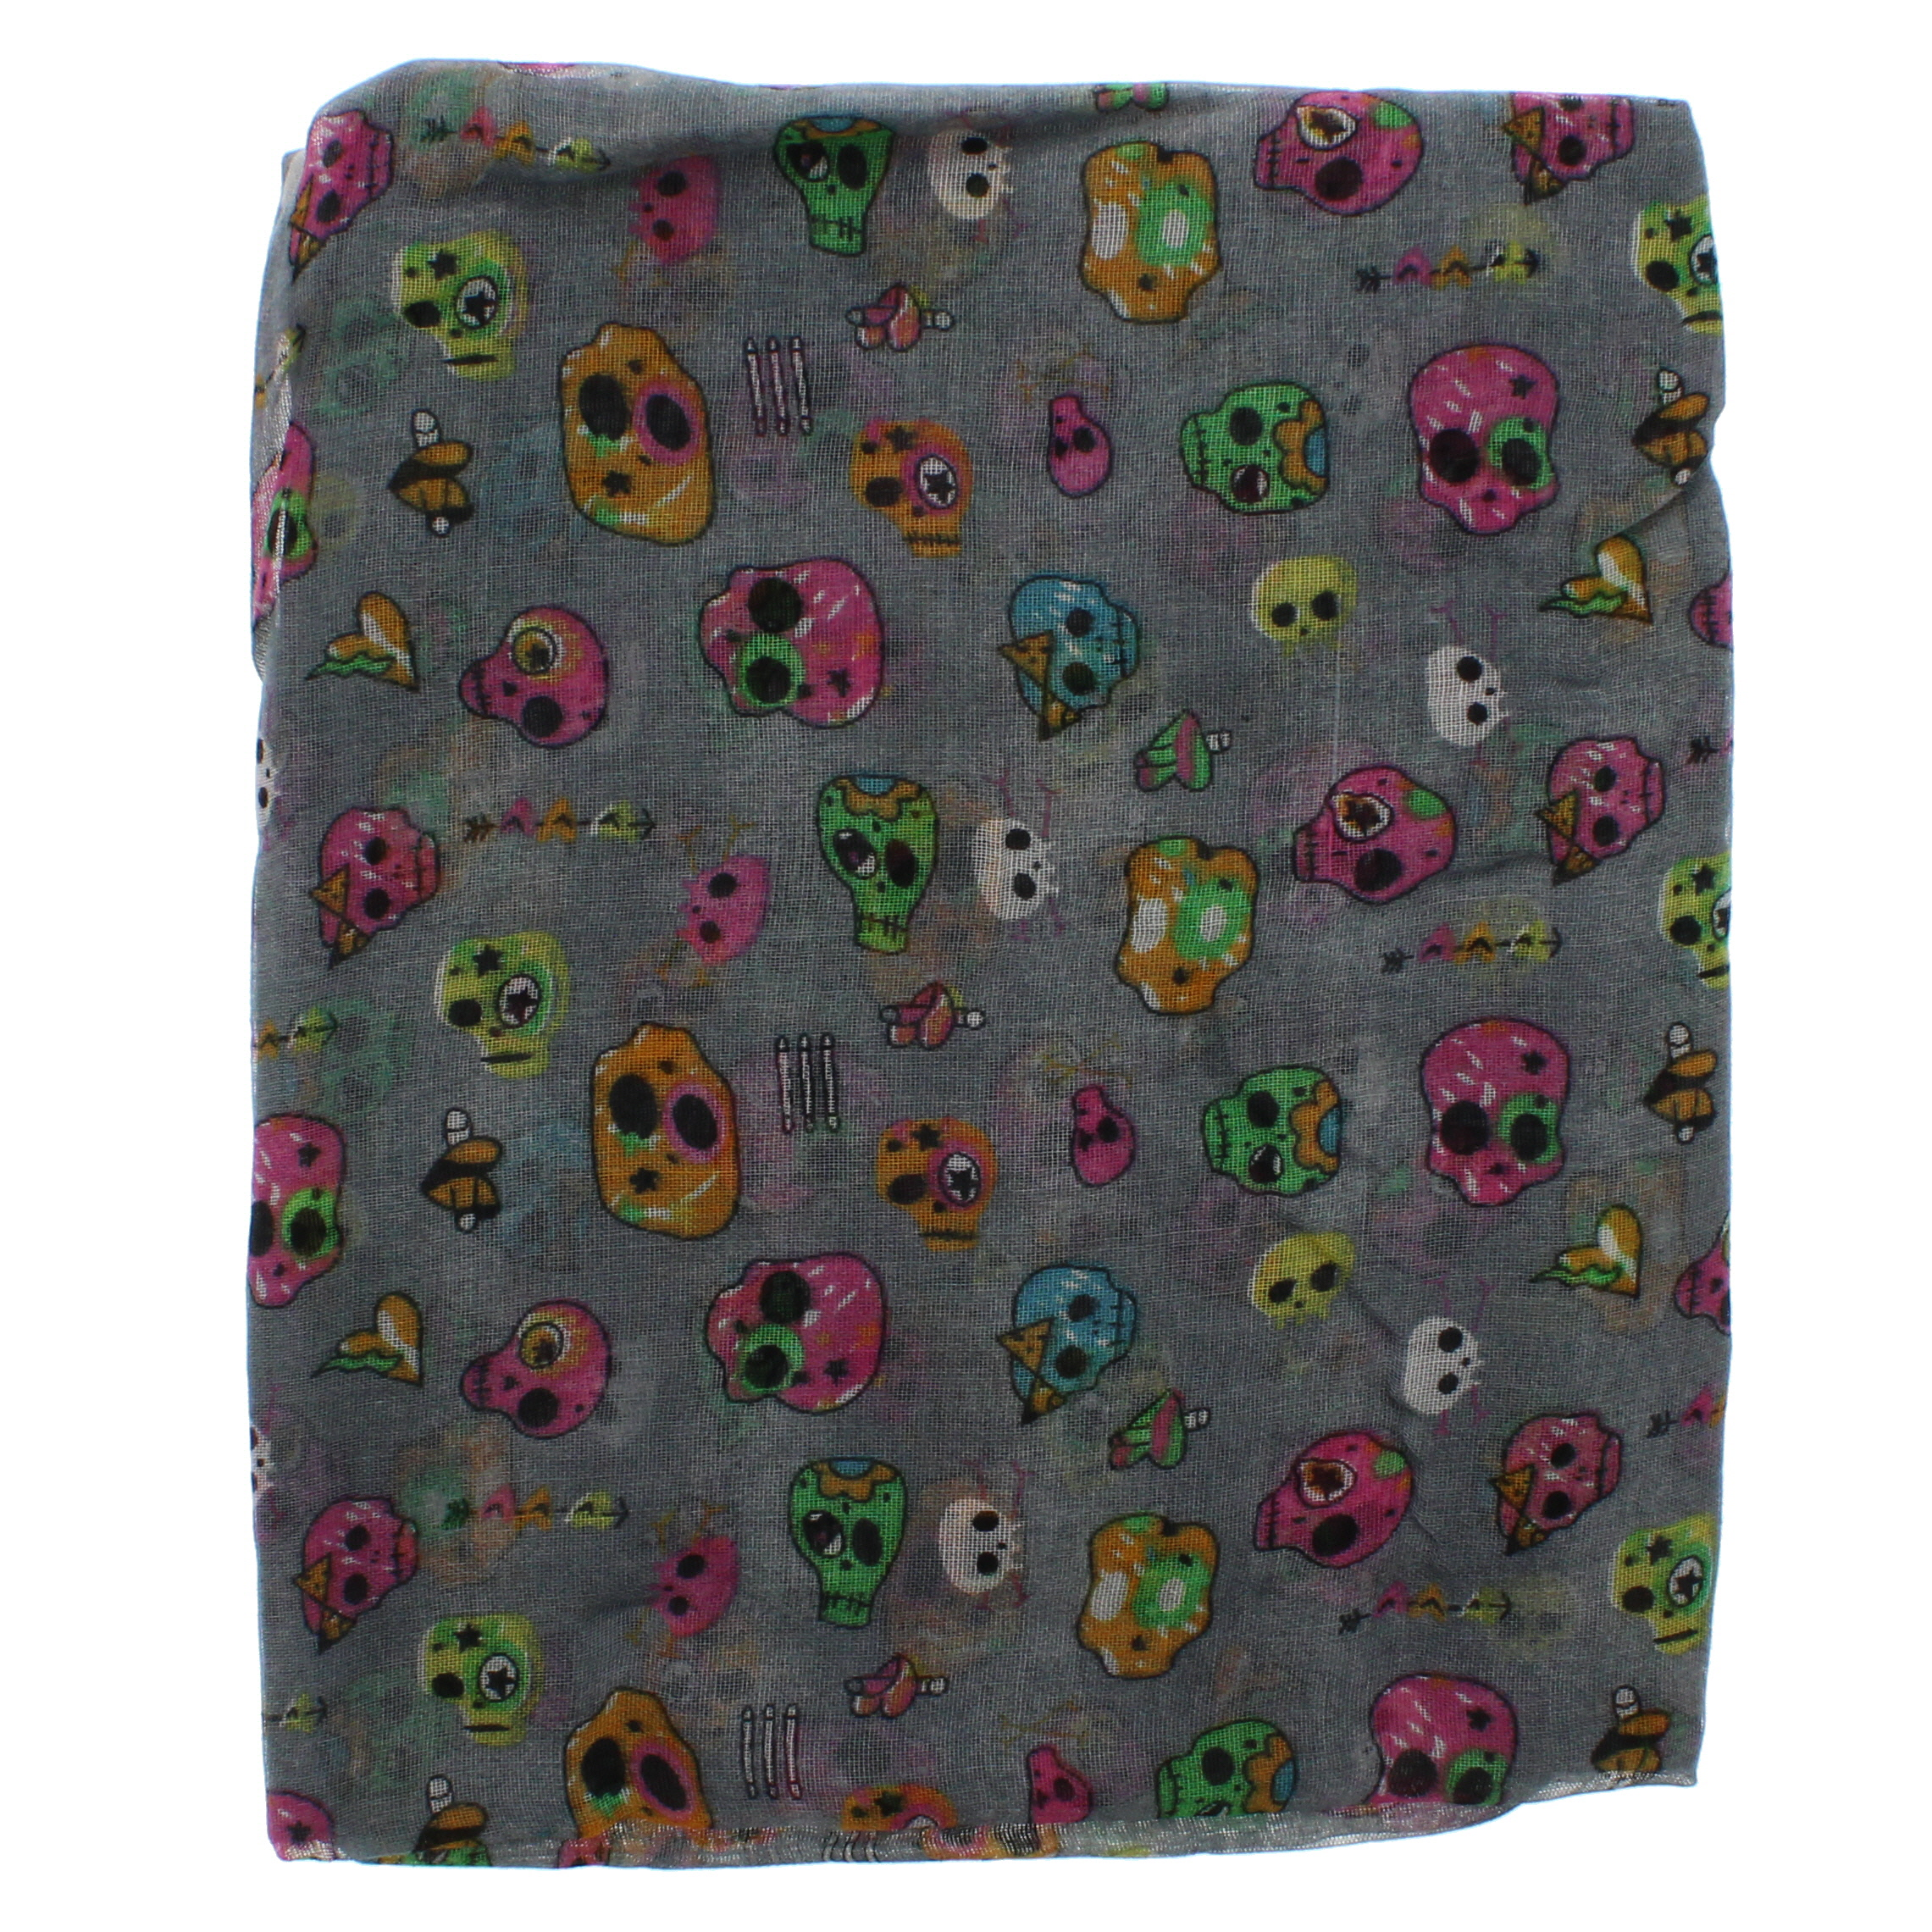 Zac/'s Alter Ego Long Lightweight Scarf with Multicolour Crazy Skulls